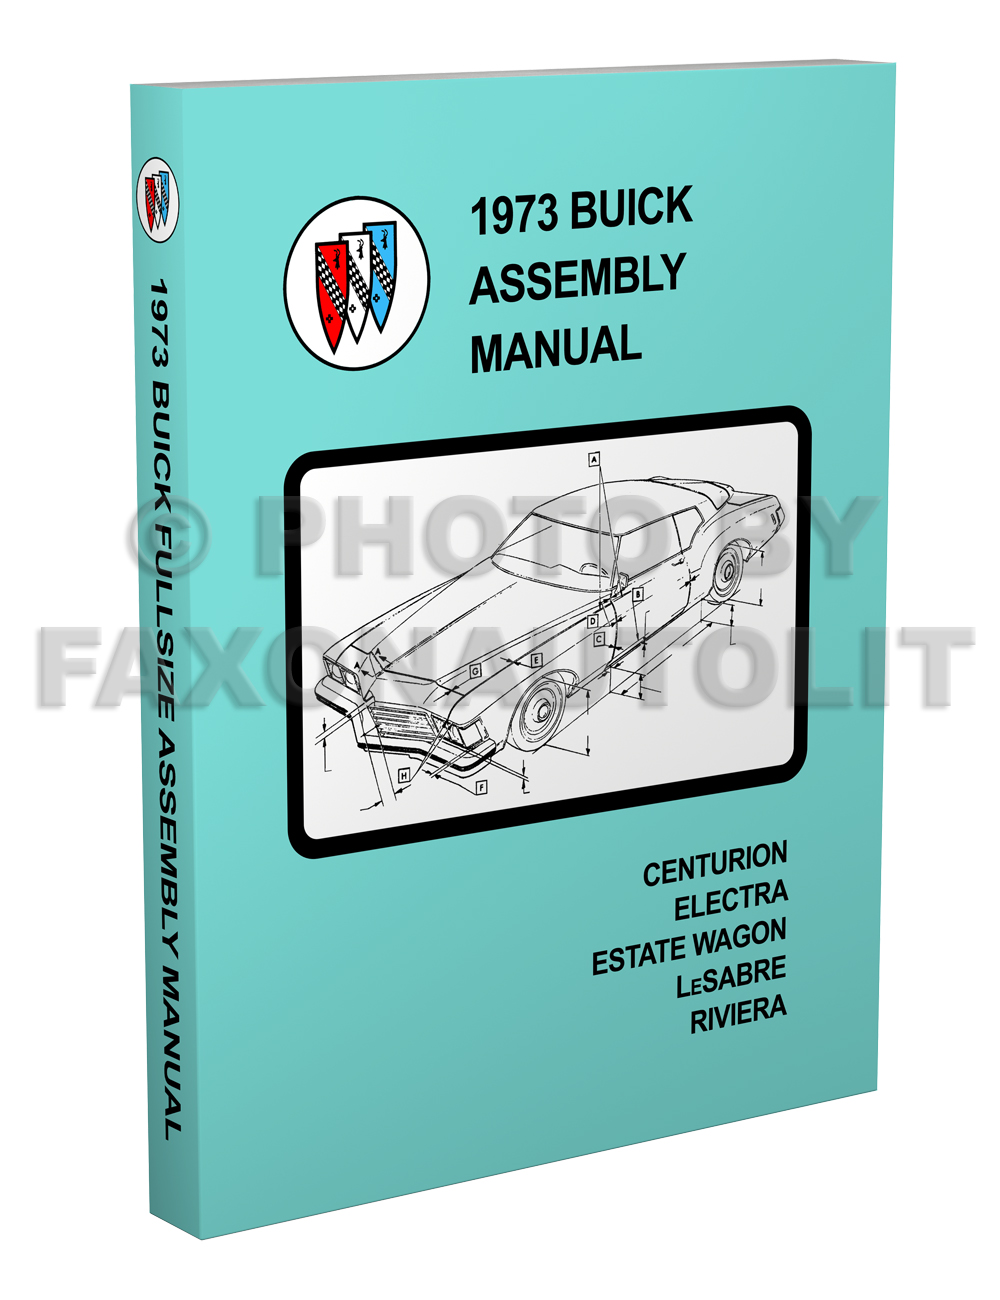 Mercury 115 outboard repair manual 2 stroke